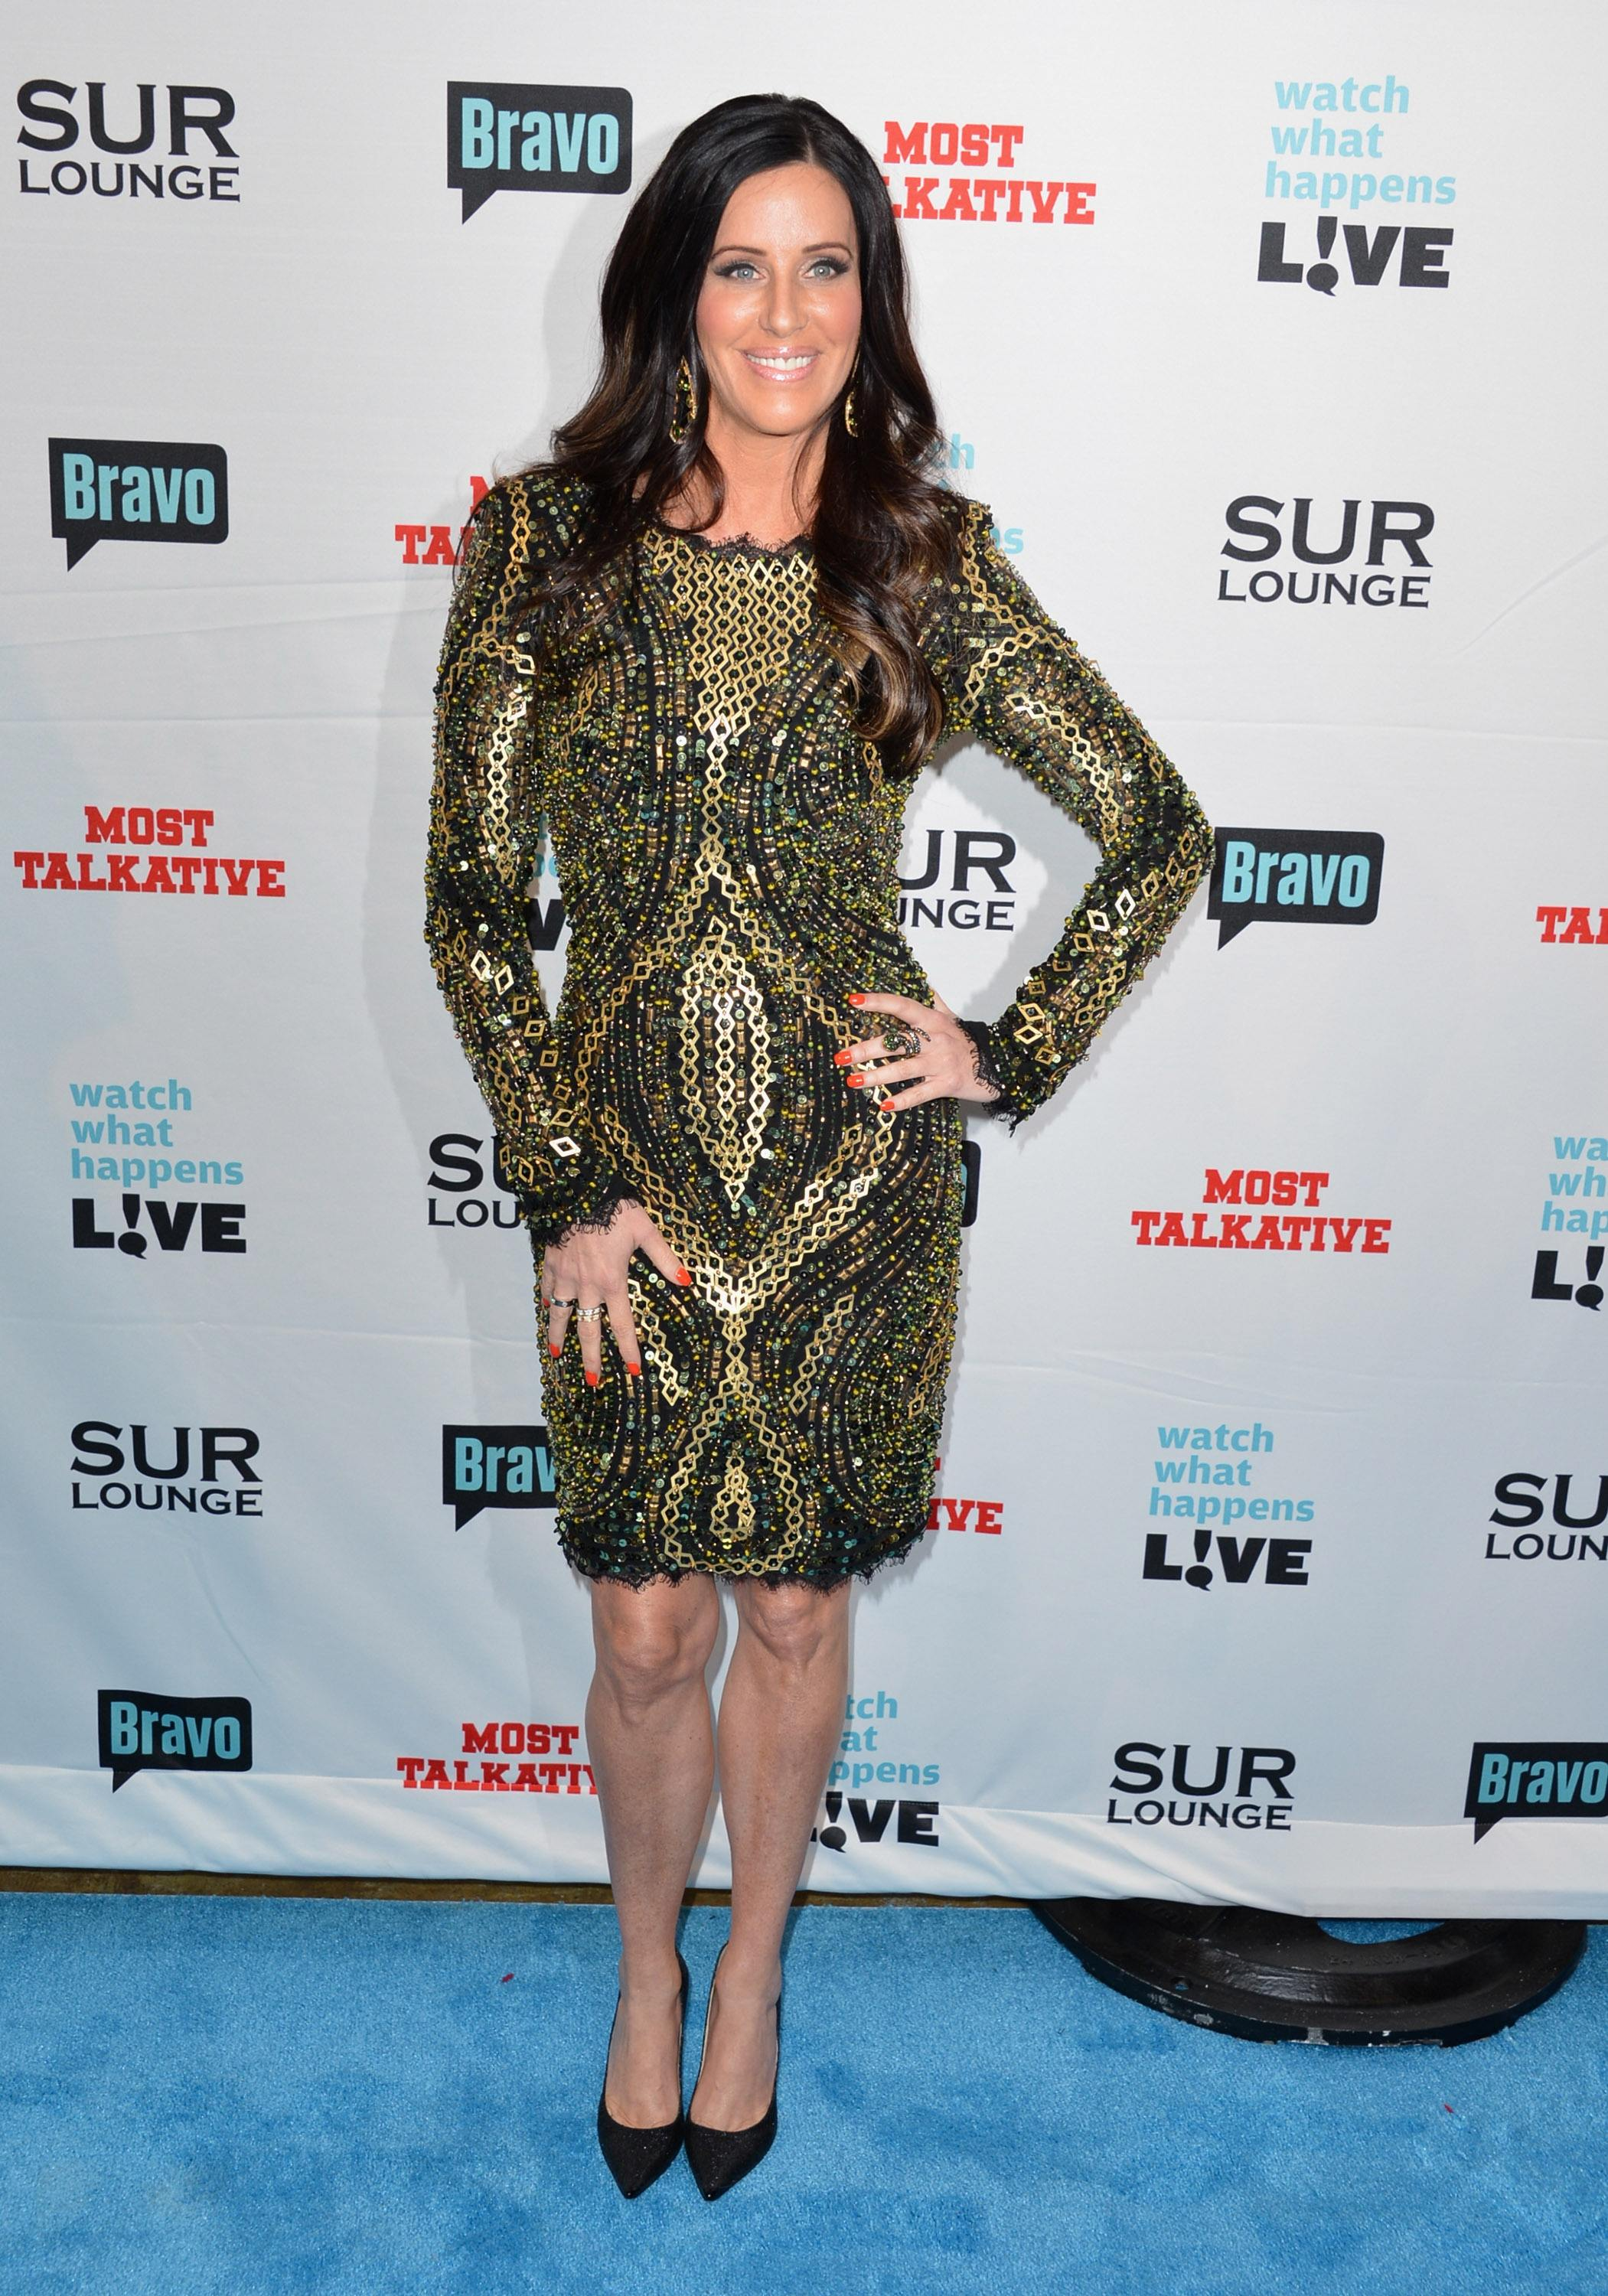 JUDY: Patti stanger biography